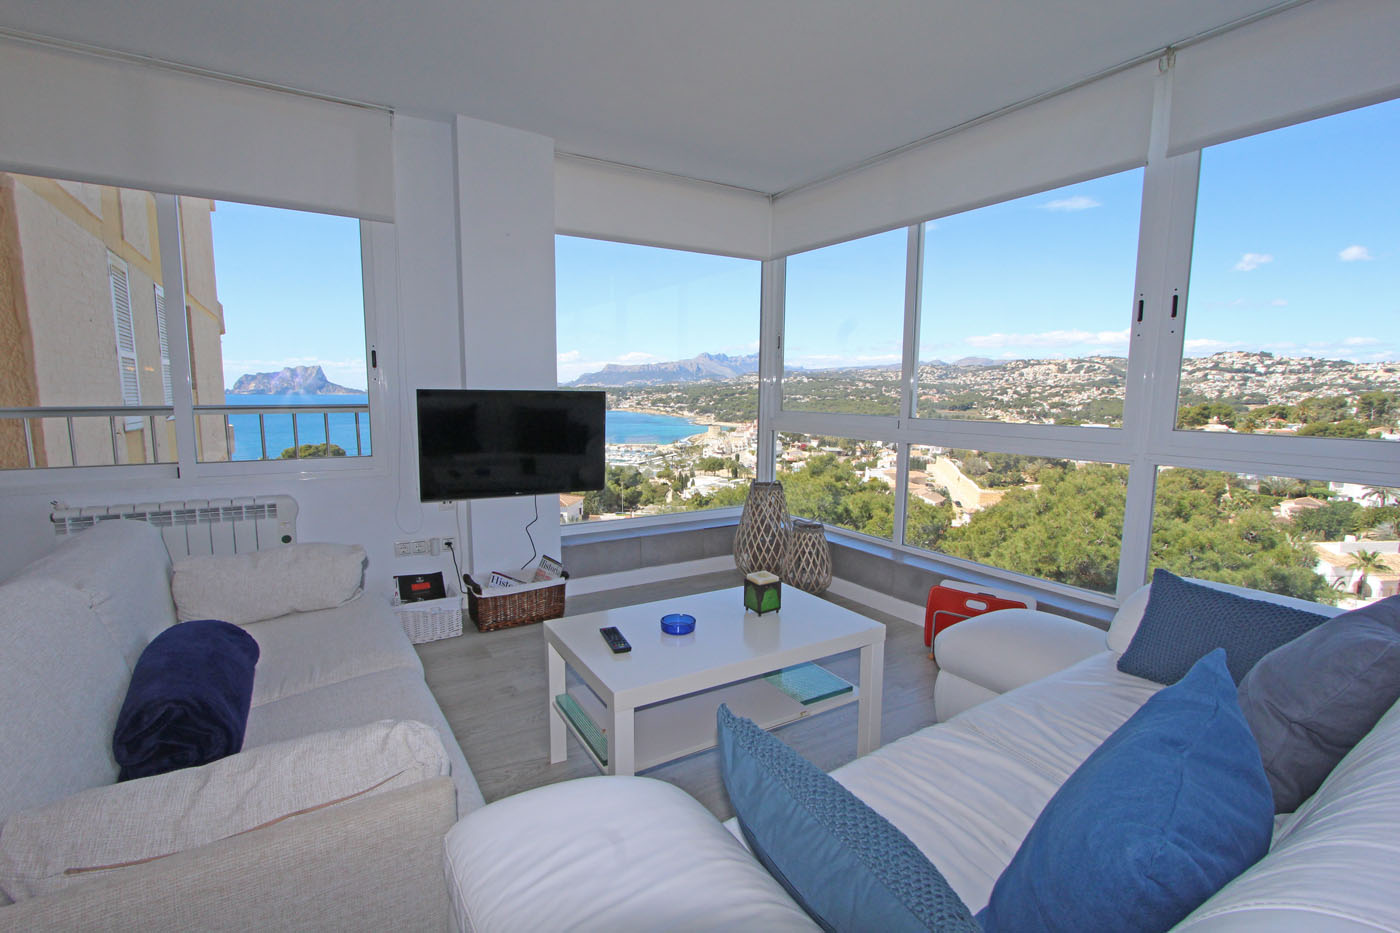 Apartamento Pili,Modern and cheerful apartment in Moraira, on the Costa Blanca, Spain for 3 persons.....